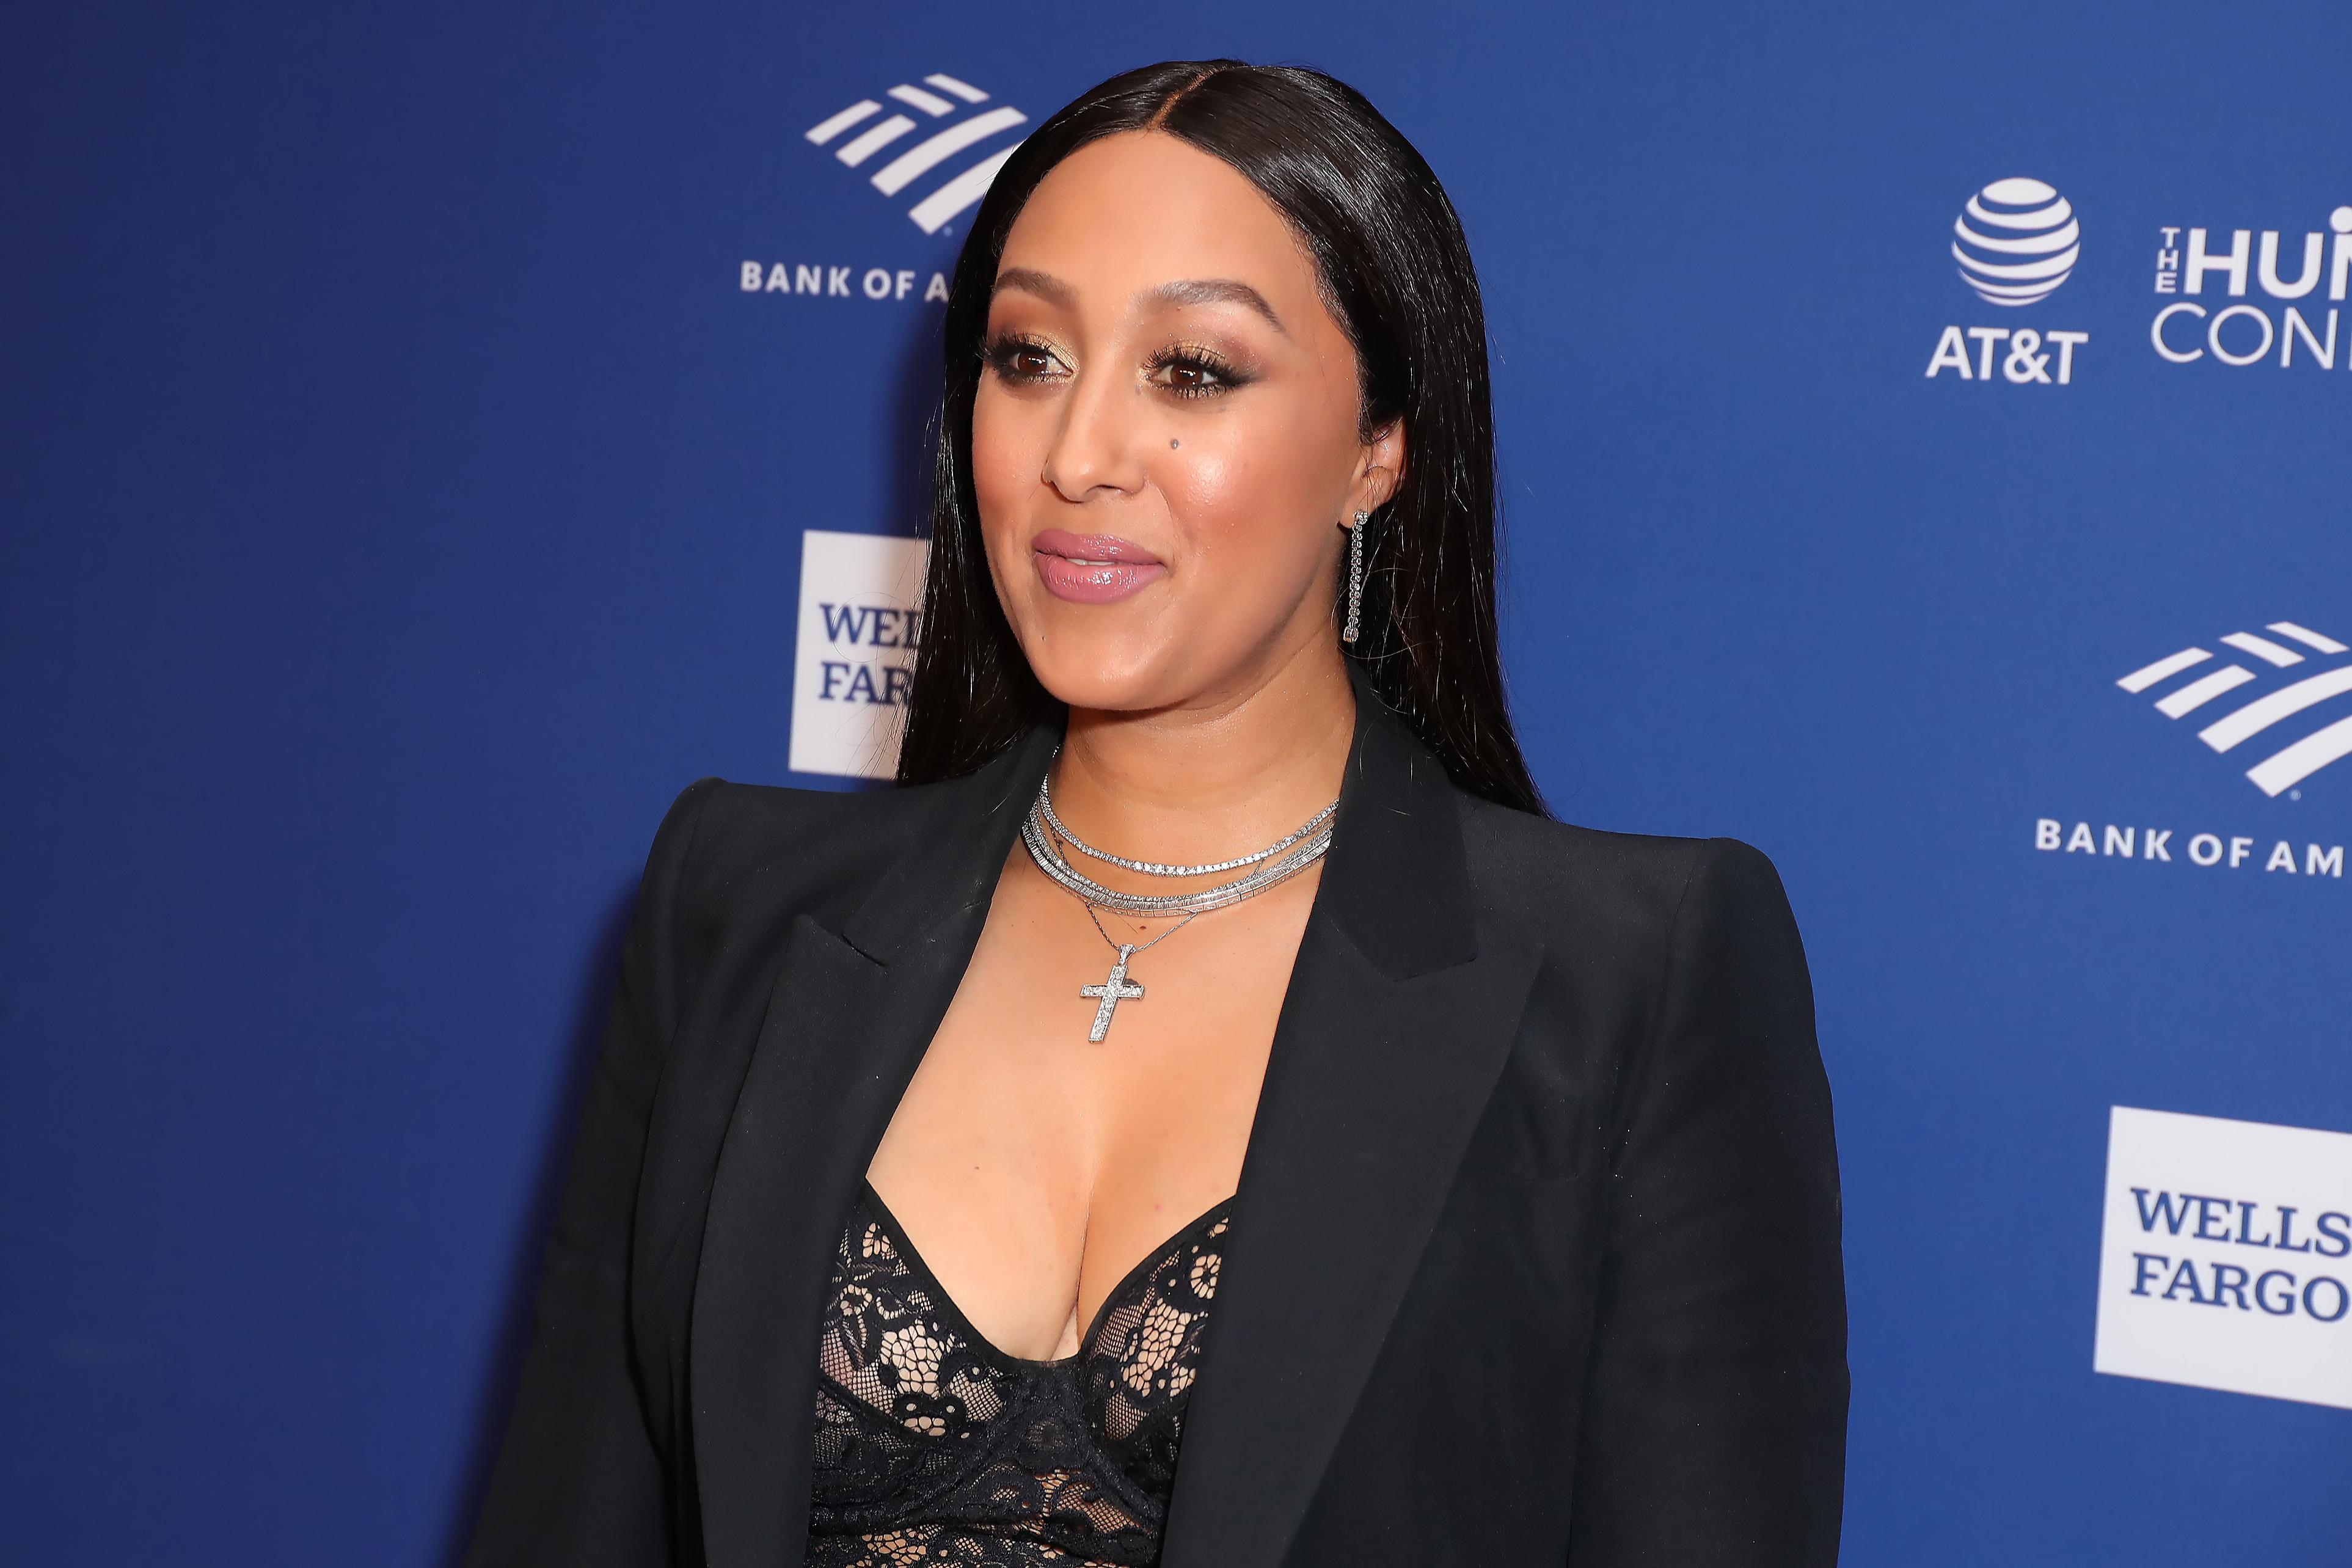 Tamera Mowry-Housley pays tribute to late niece who died in 2018 mass shooting: 'It still hurts'